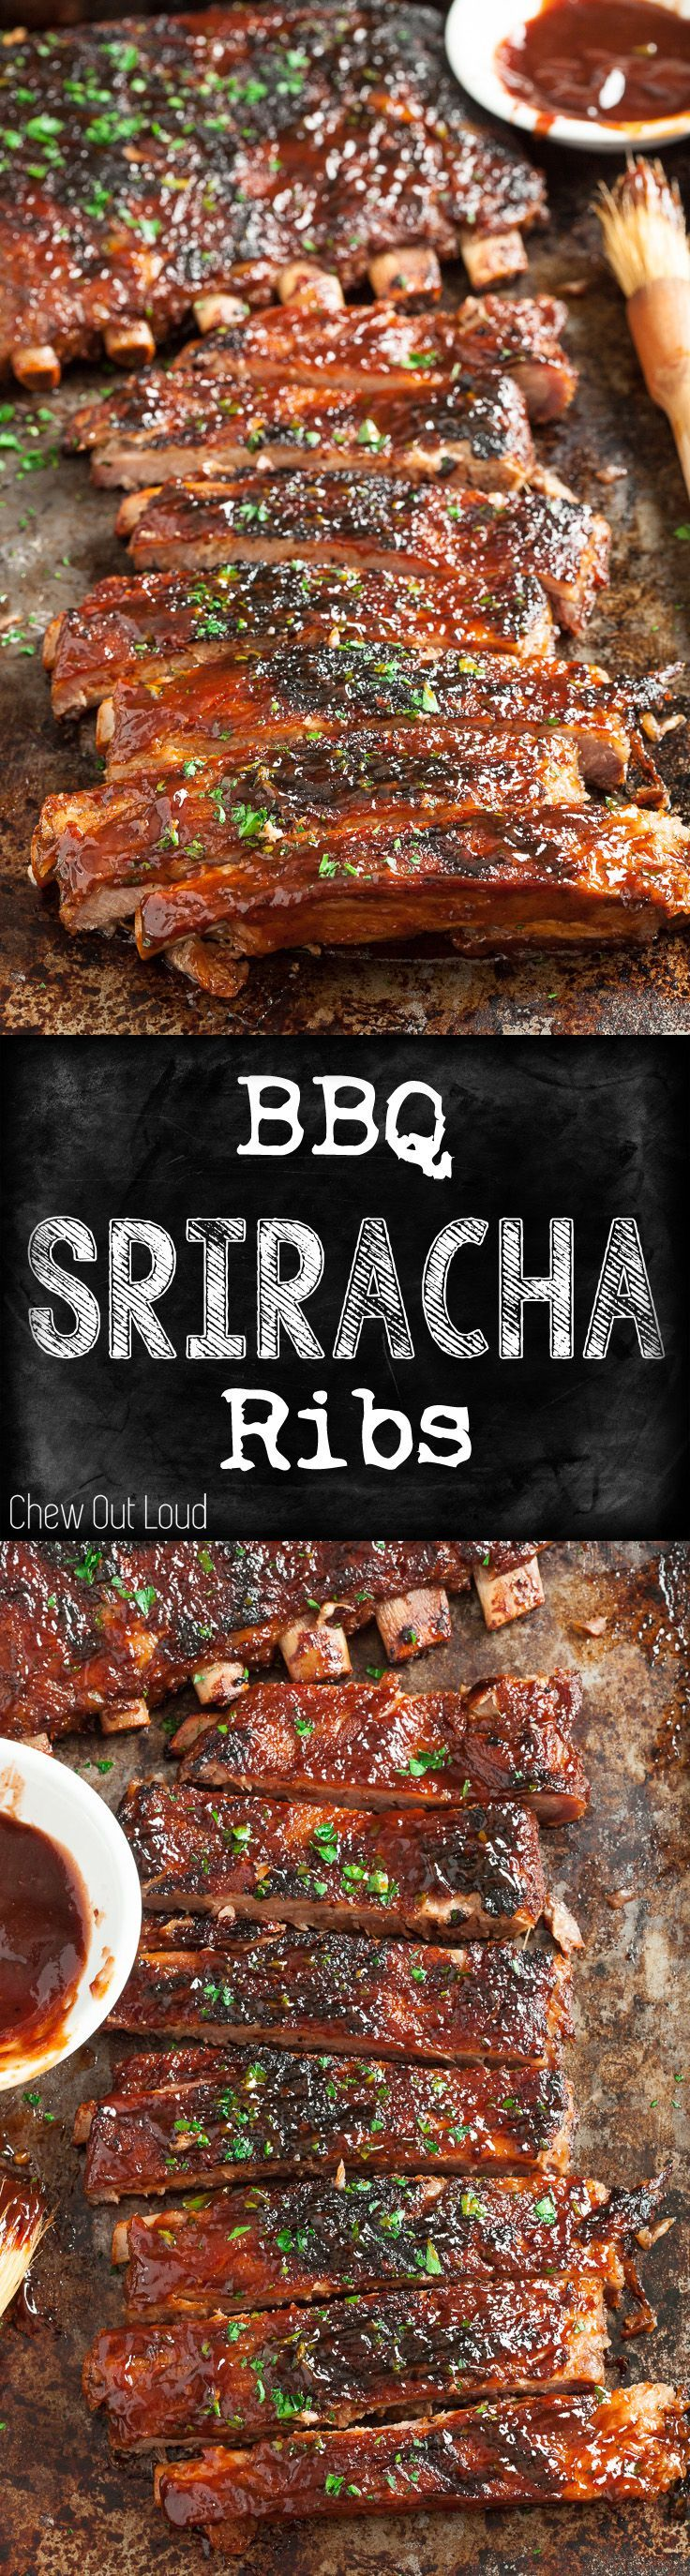 SO flavorful - savory, sweet, zesty, amazing! Fall-off-the-bone tender. You'll never look back. #bbq #ribs #recipe